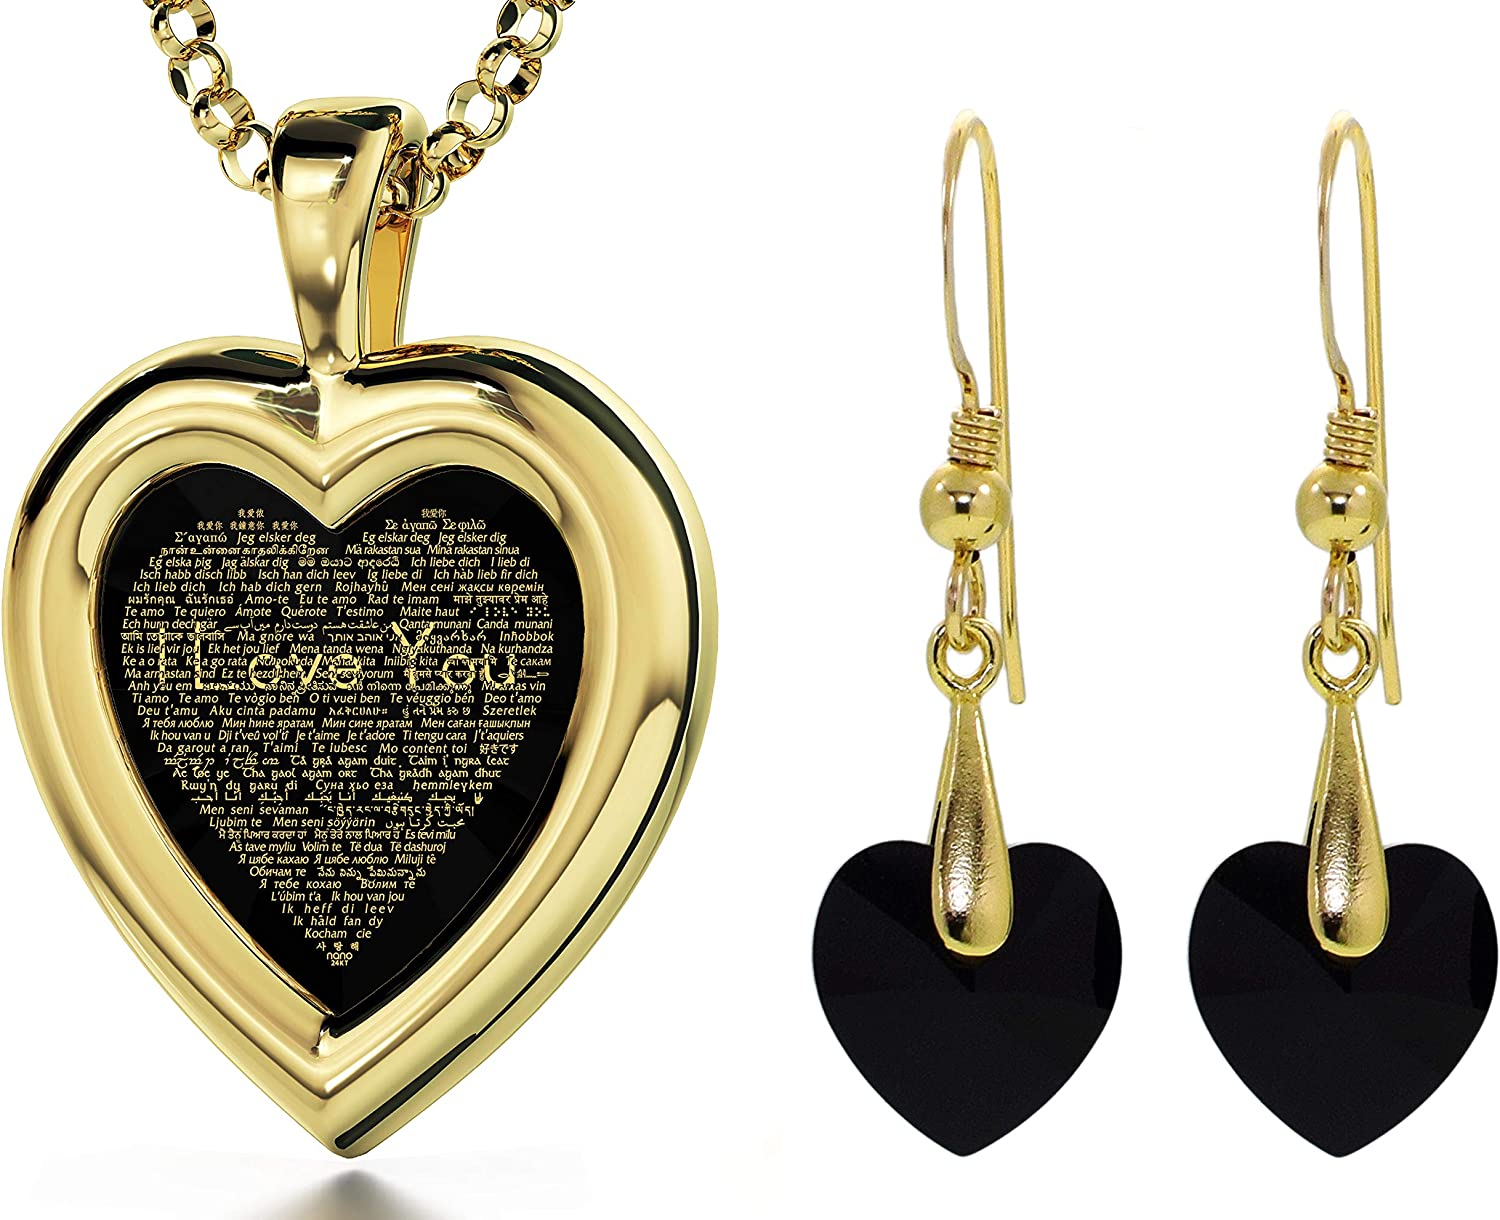 Glass heart shaped pendant filled with 24kt  gold leaf $ $ $!